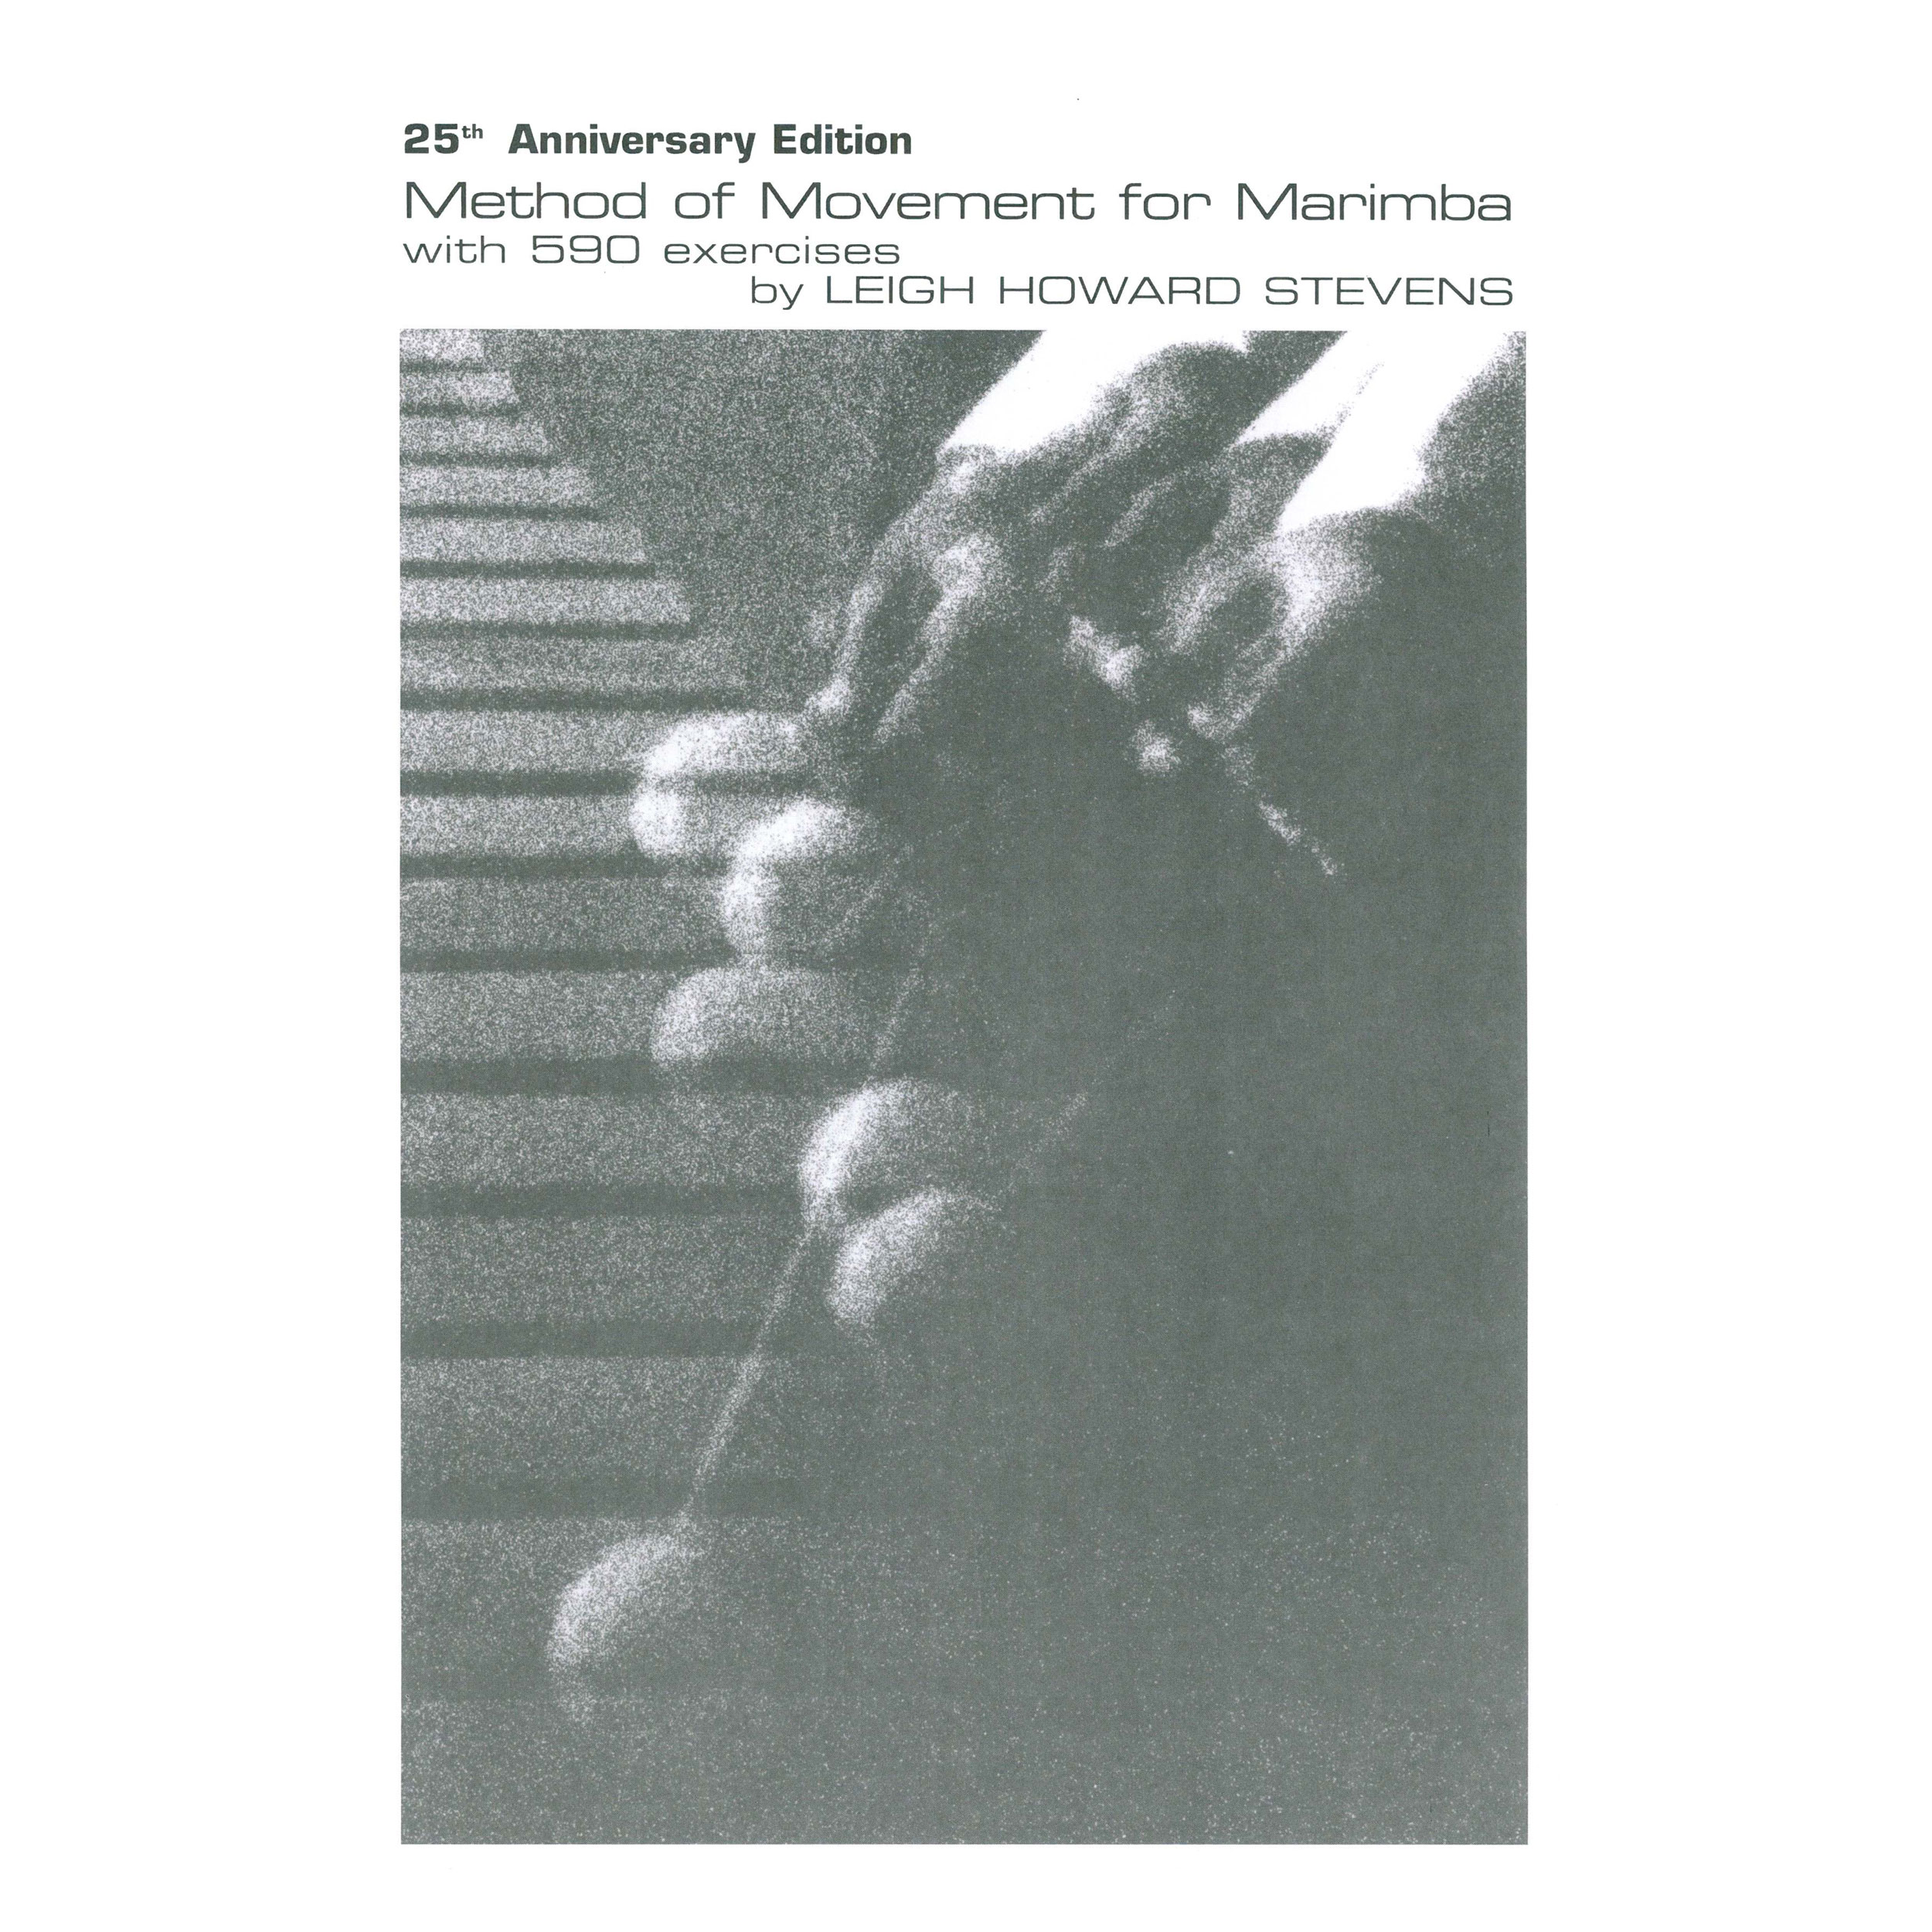 Method of Movement for Marimba by Leigh Howard Stevens